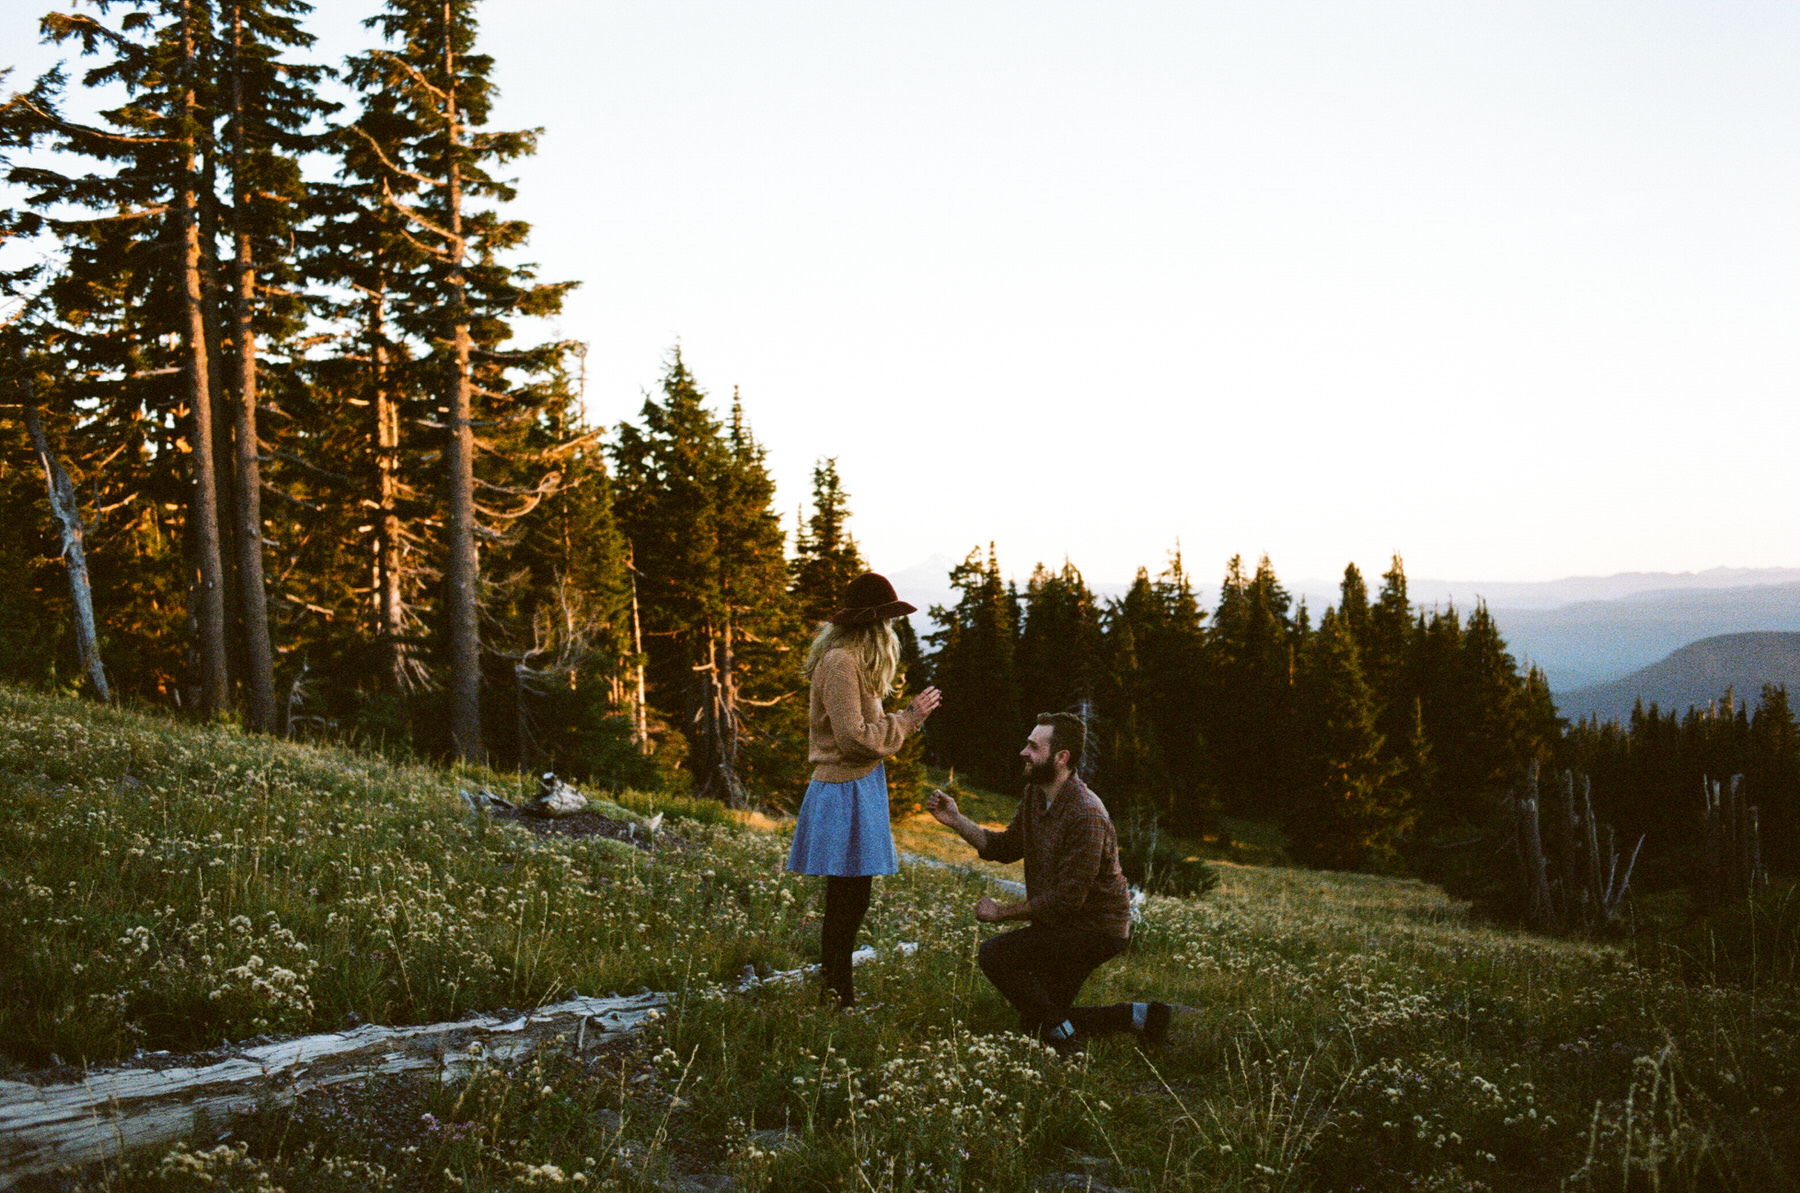 Mt. Hood proposal, the guy took a knee!